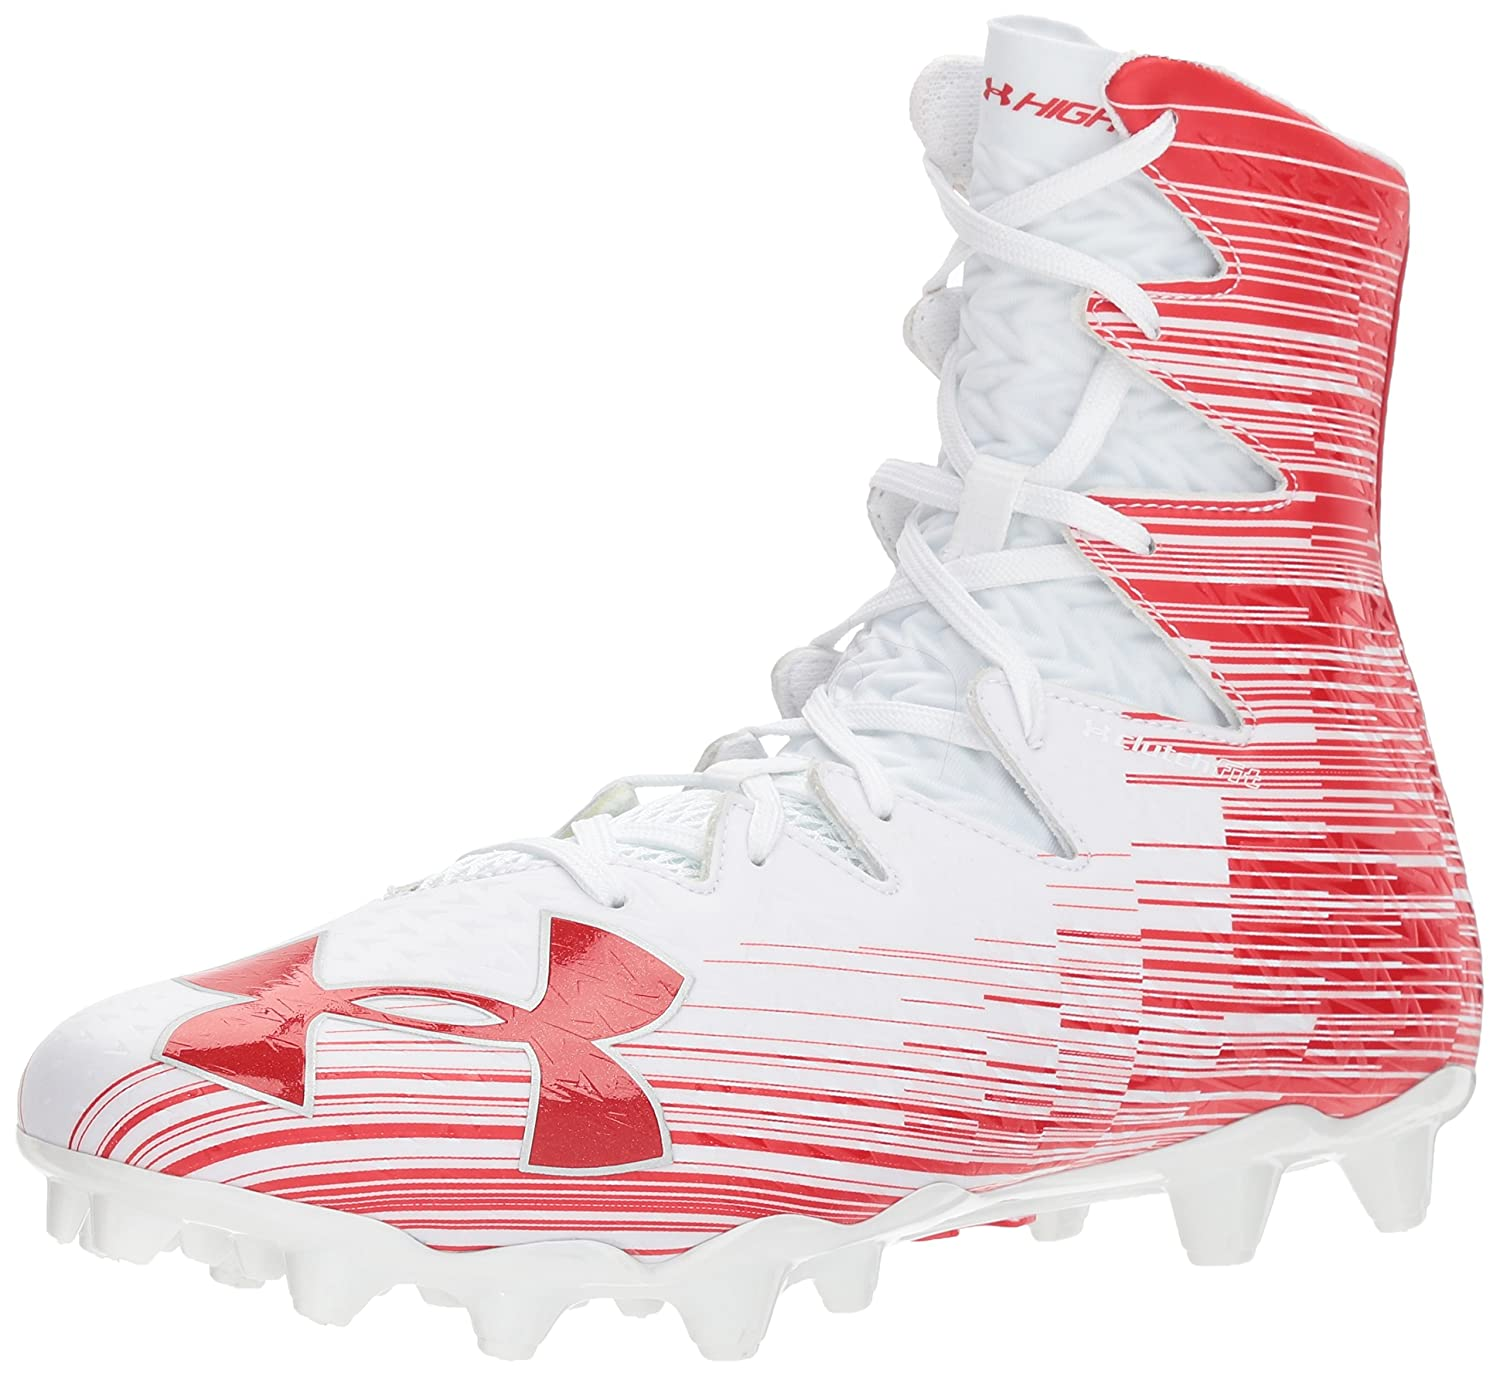 Under Armour Men's Highlight M.C. Lacrosse Shoe B06XKGNX7H 11.5 M US|White (161)/Red